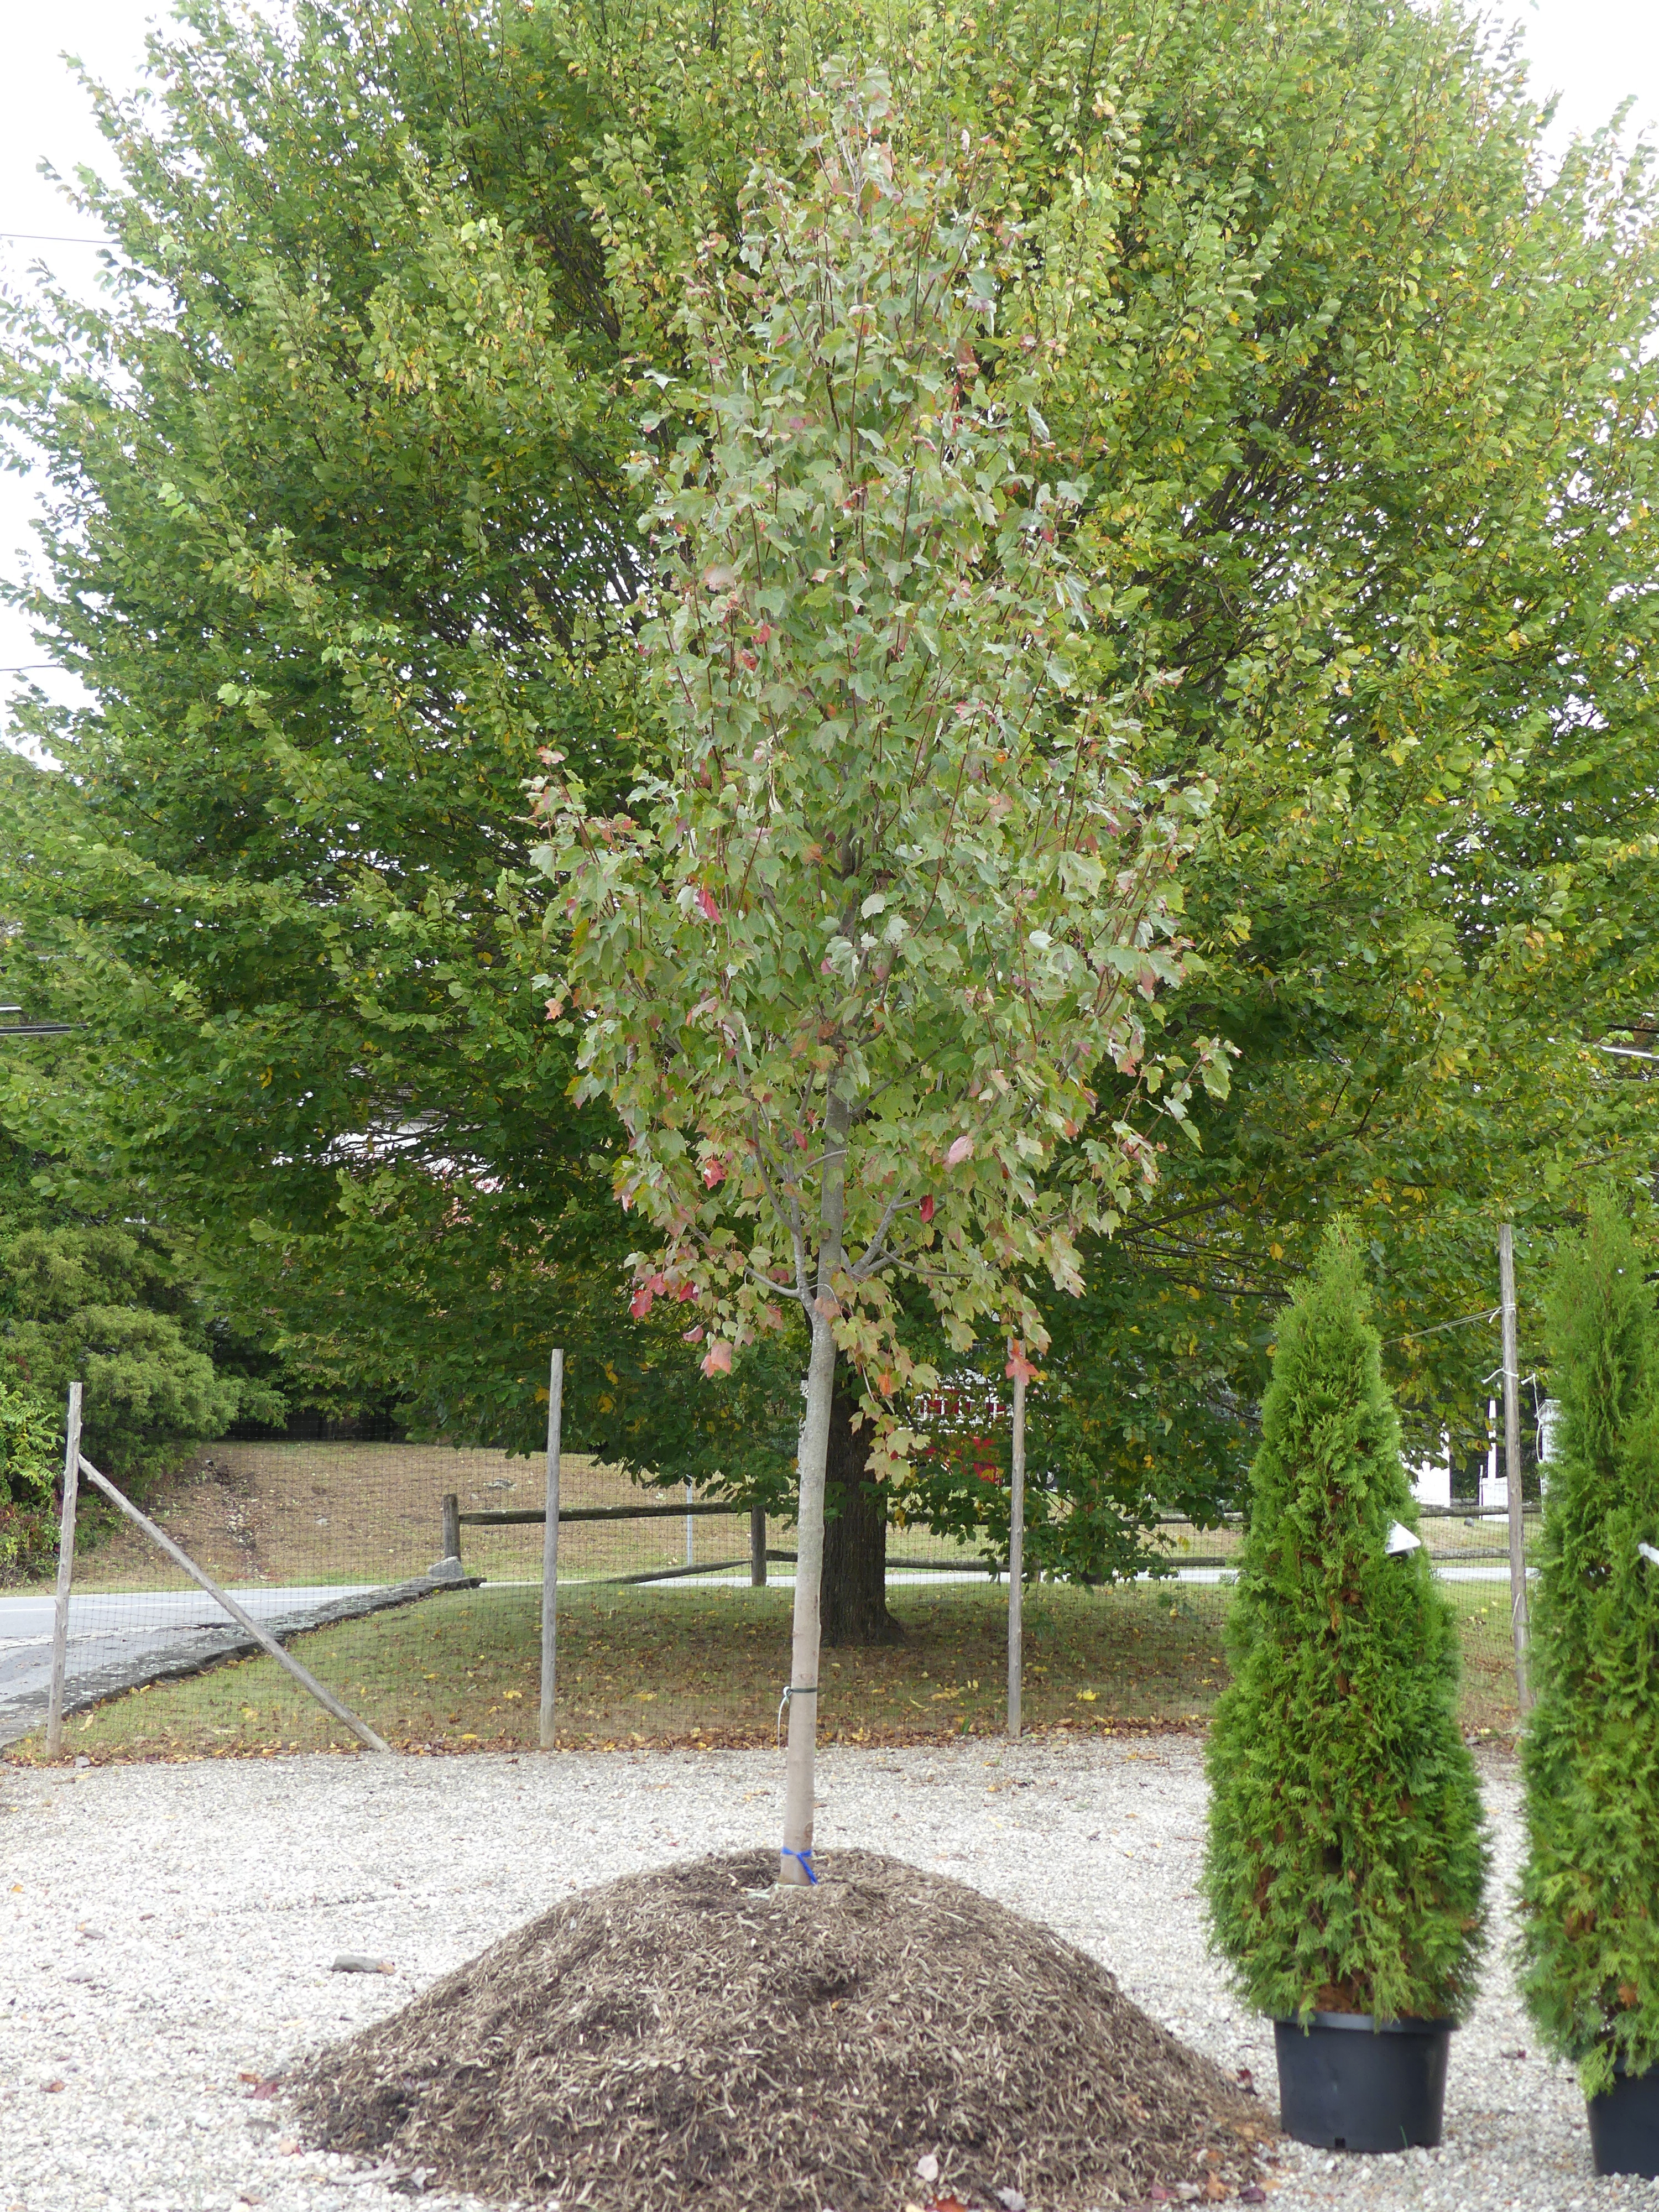 Remember that when buying an end-of-the-season tree you can bargain for an extra year of guarantee and even discounted planting. This maple could by yours for half the original $750 retail price. ANDREW MESSINGER